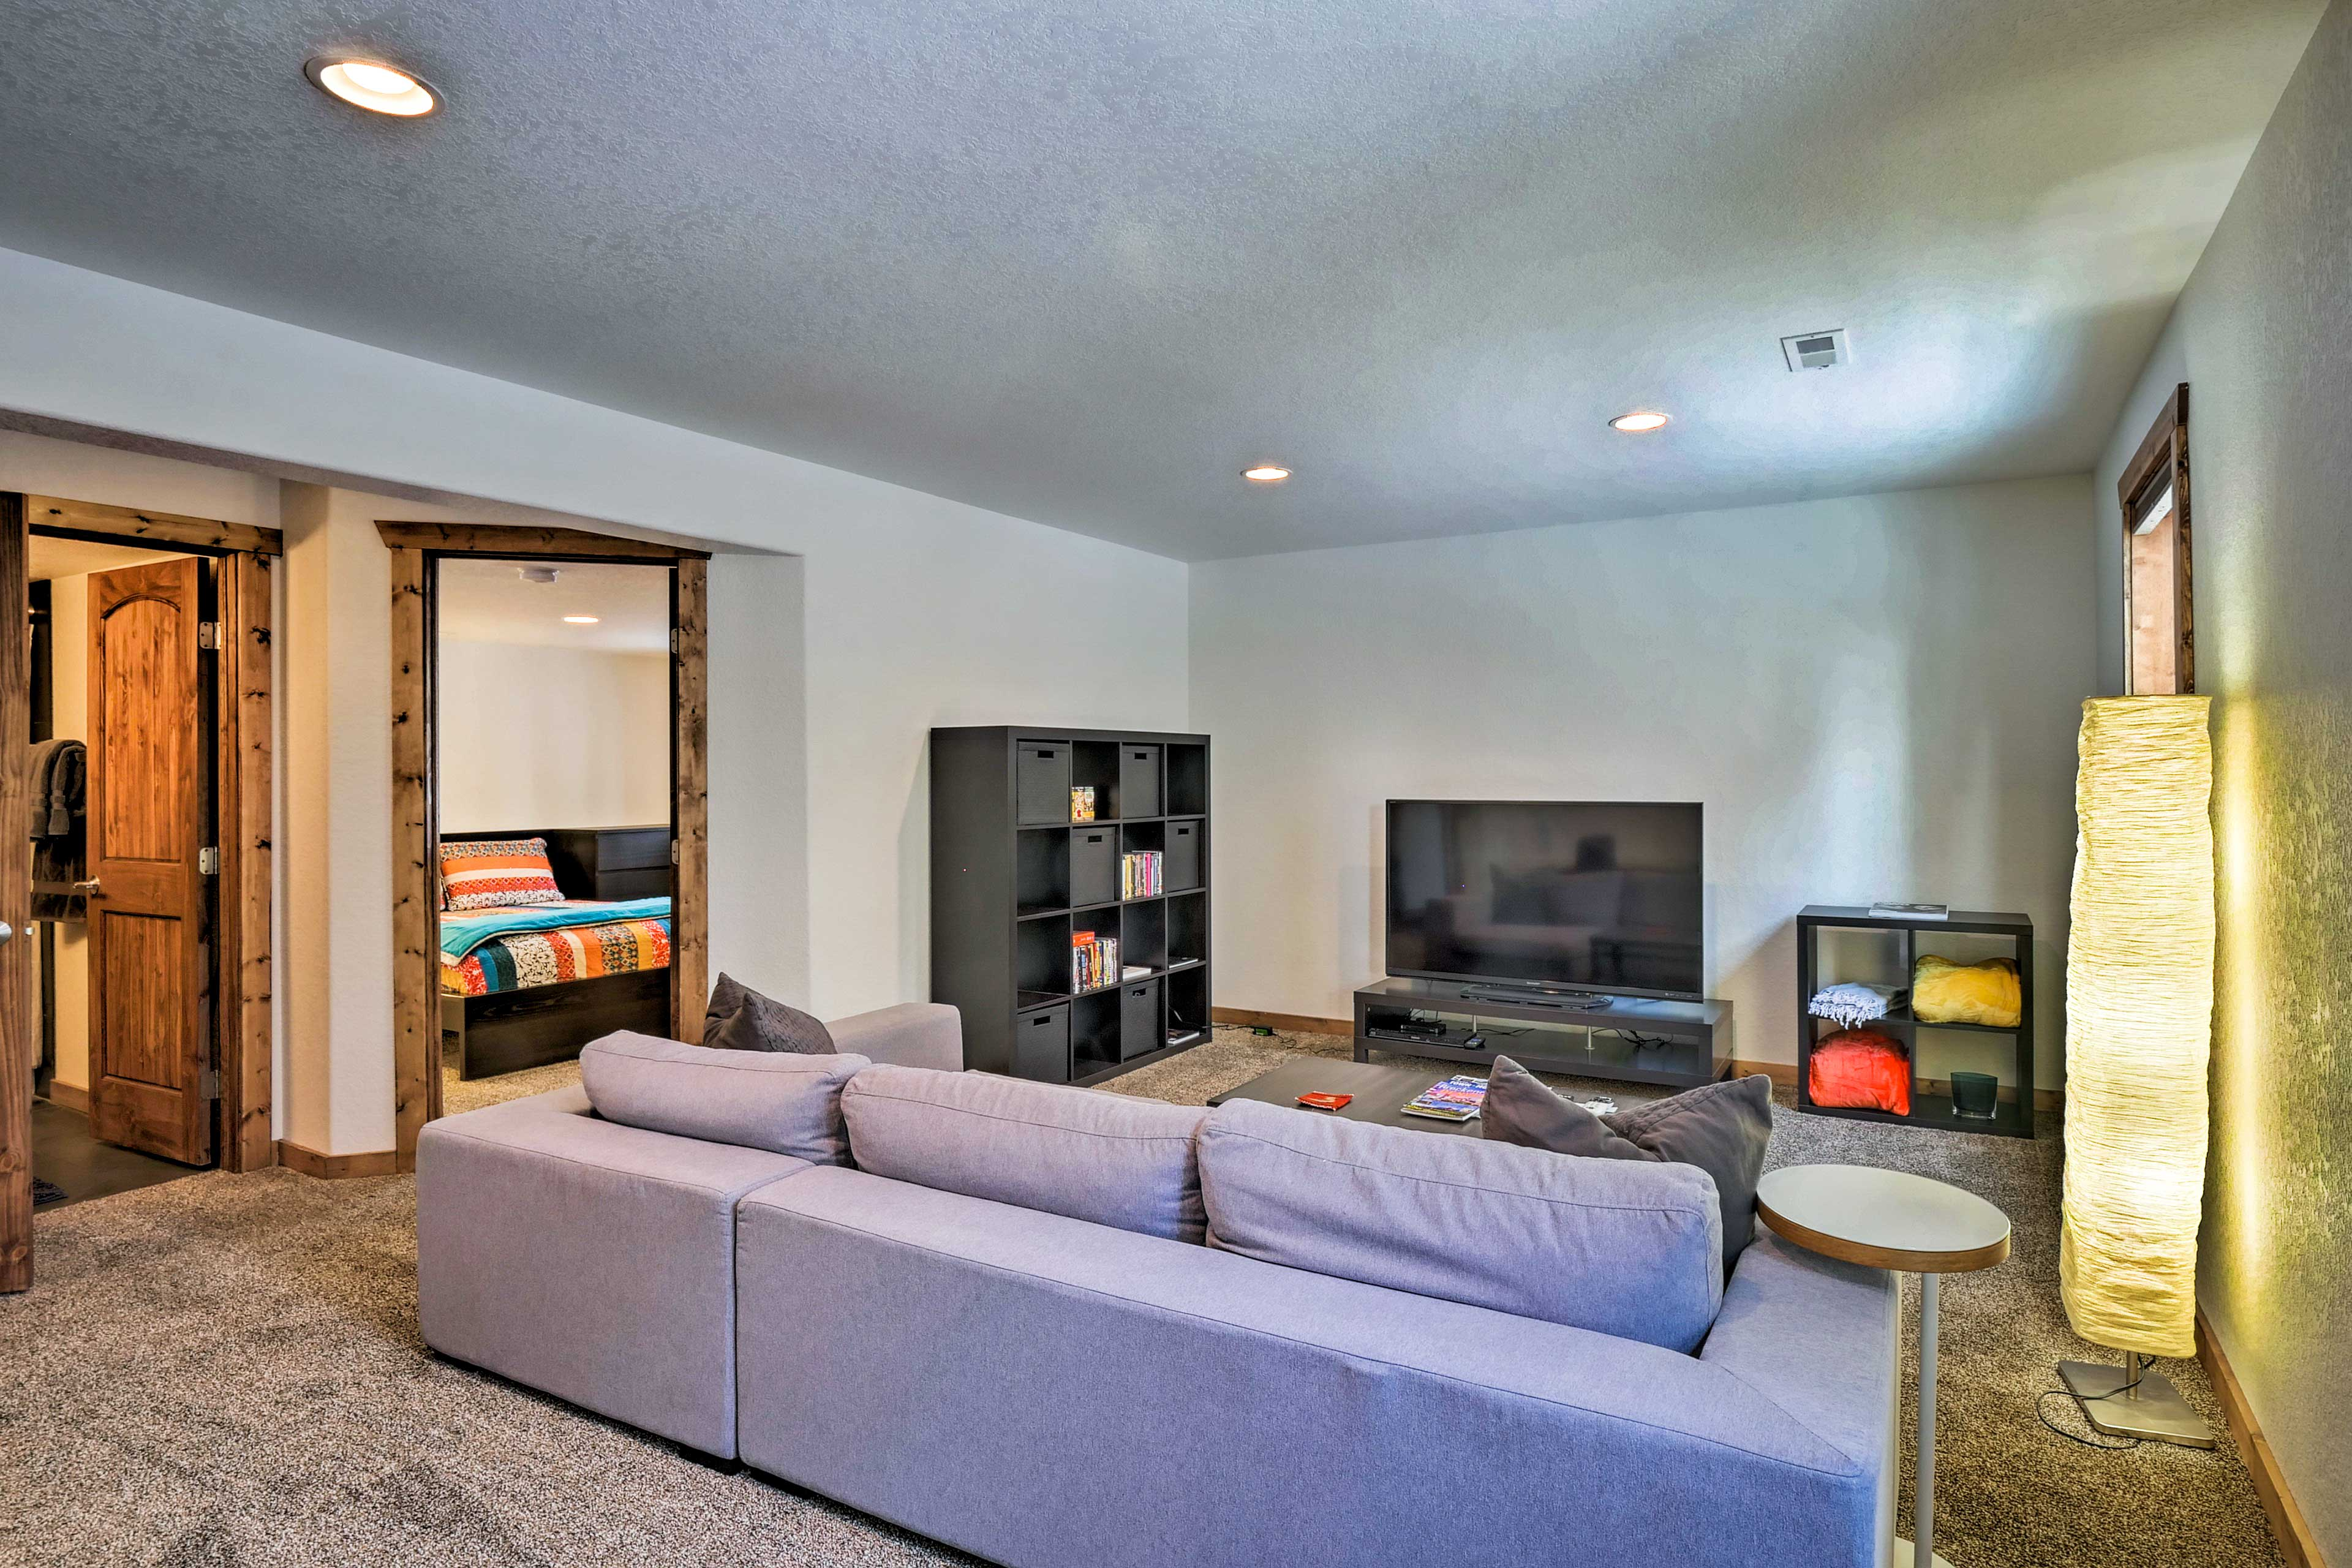 The ground floor has a spacious living room.